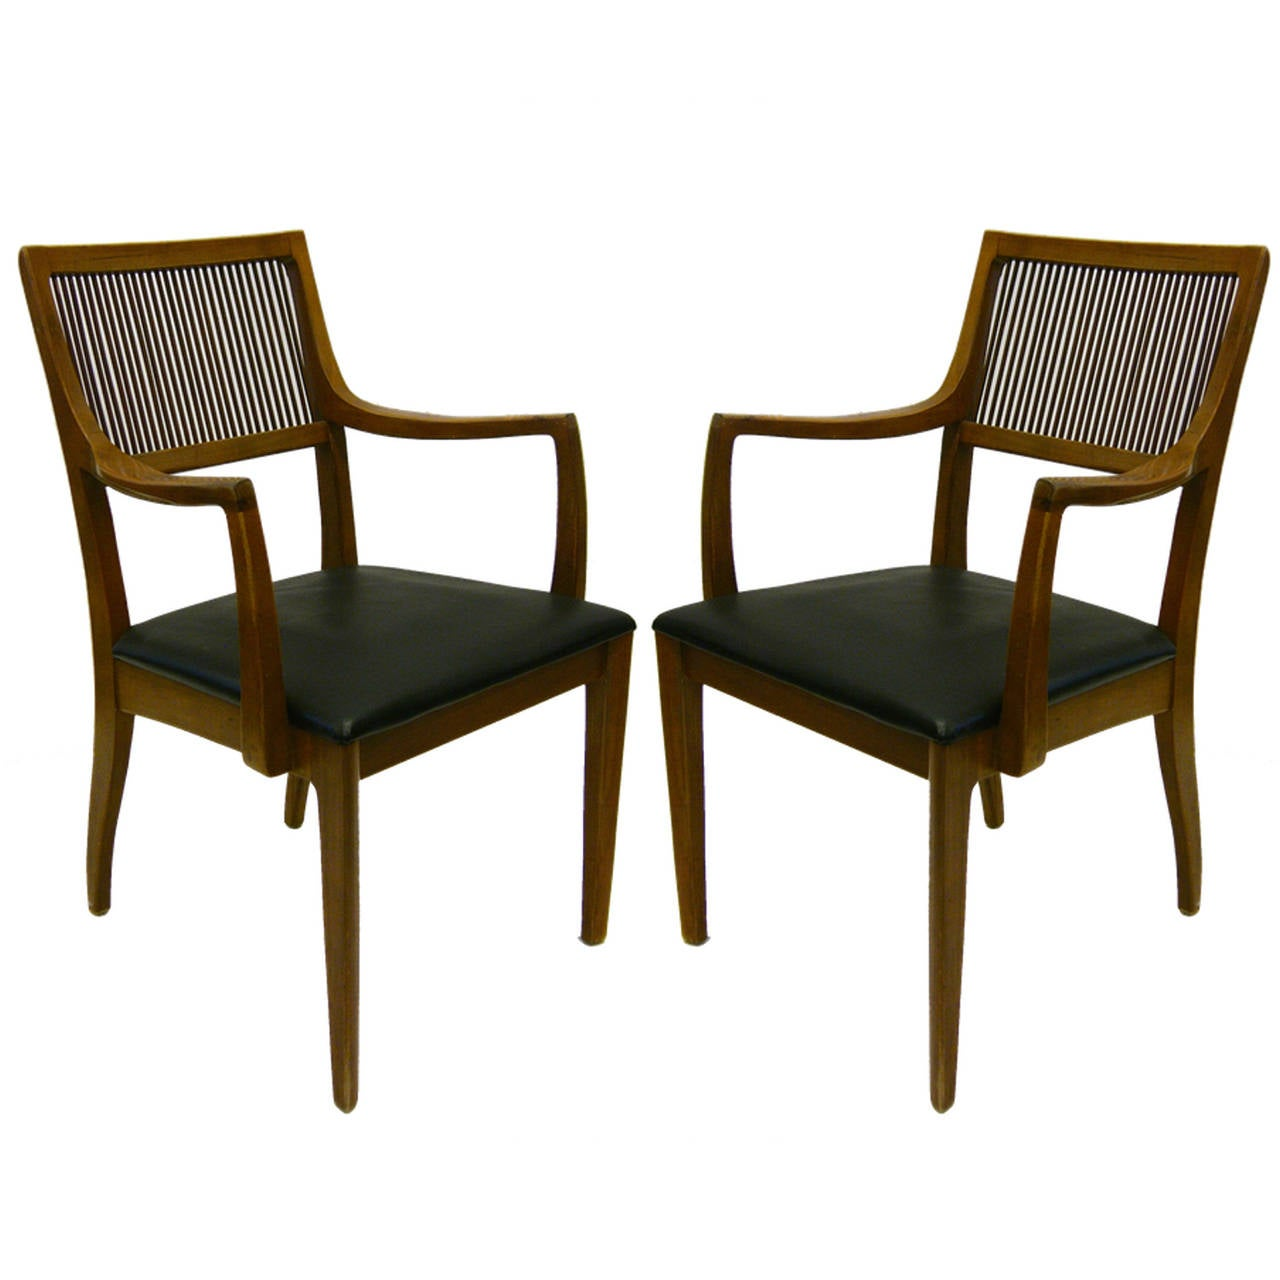 Drexel Chairs Set Of Eight Chairs By John Van Koert For Drexel At 1stdibs